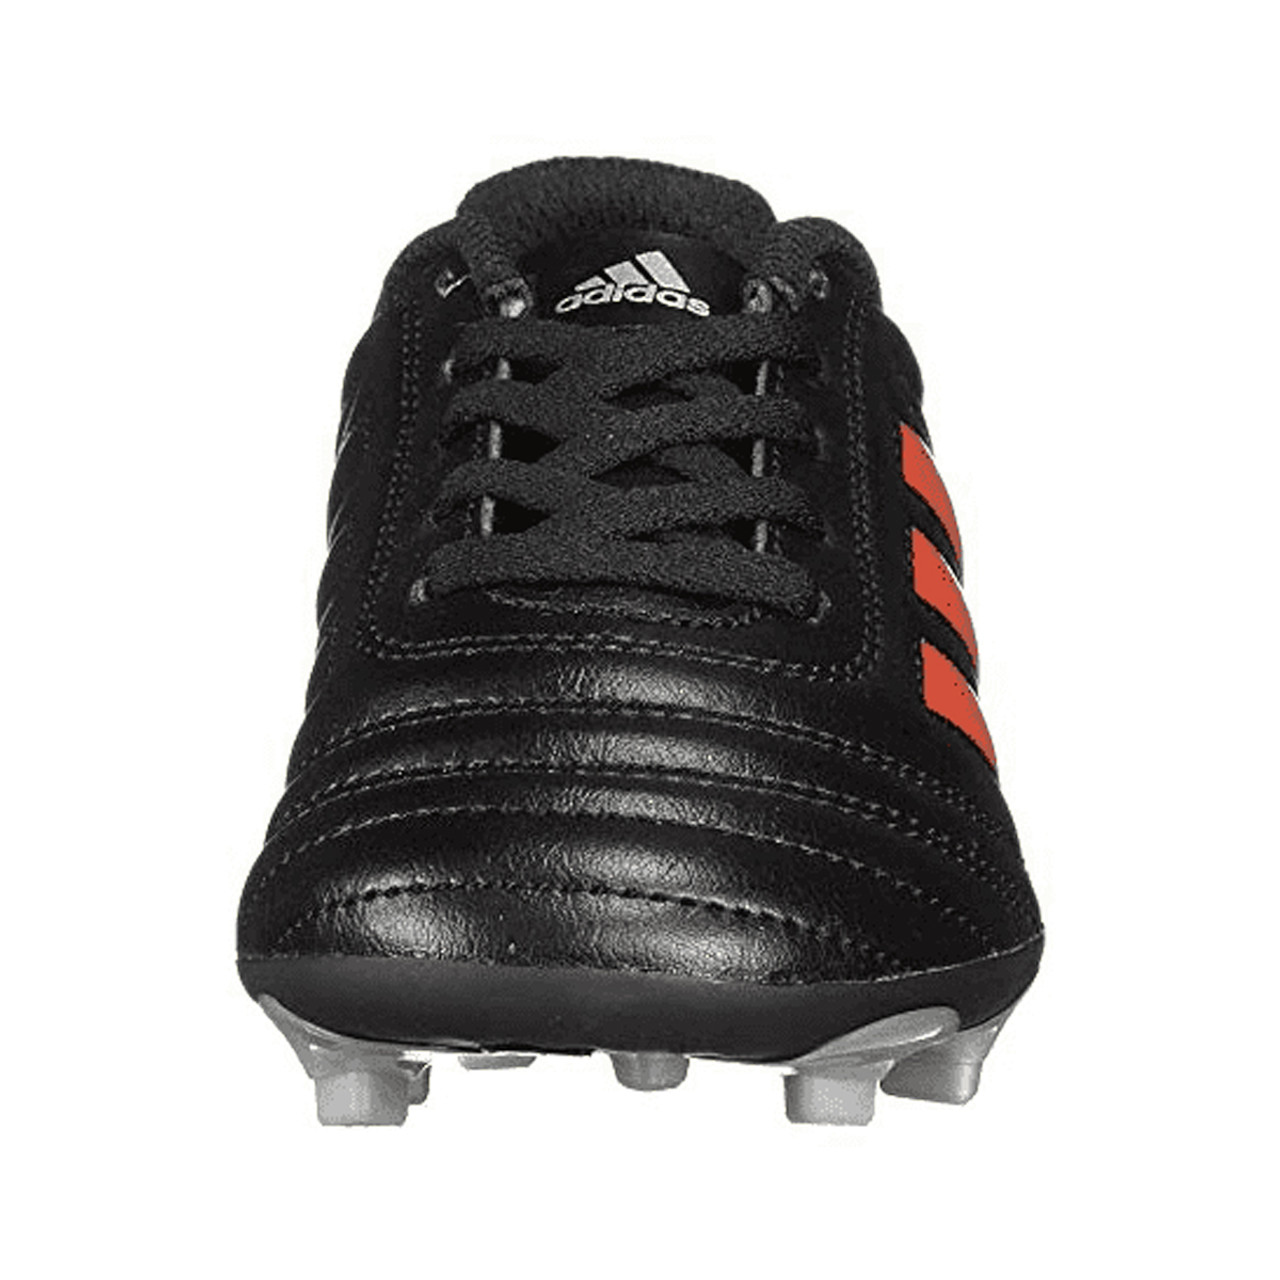 Soccer Adidas 19 Copa F35460 Junior Fg BlackRedSilver 4 Cleats sCdthrxQ